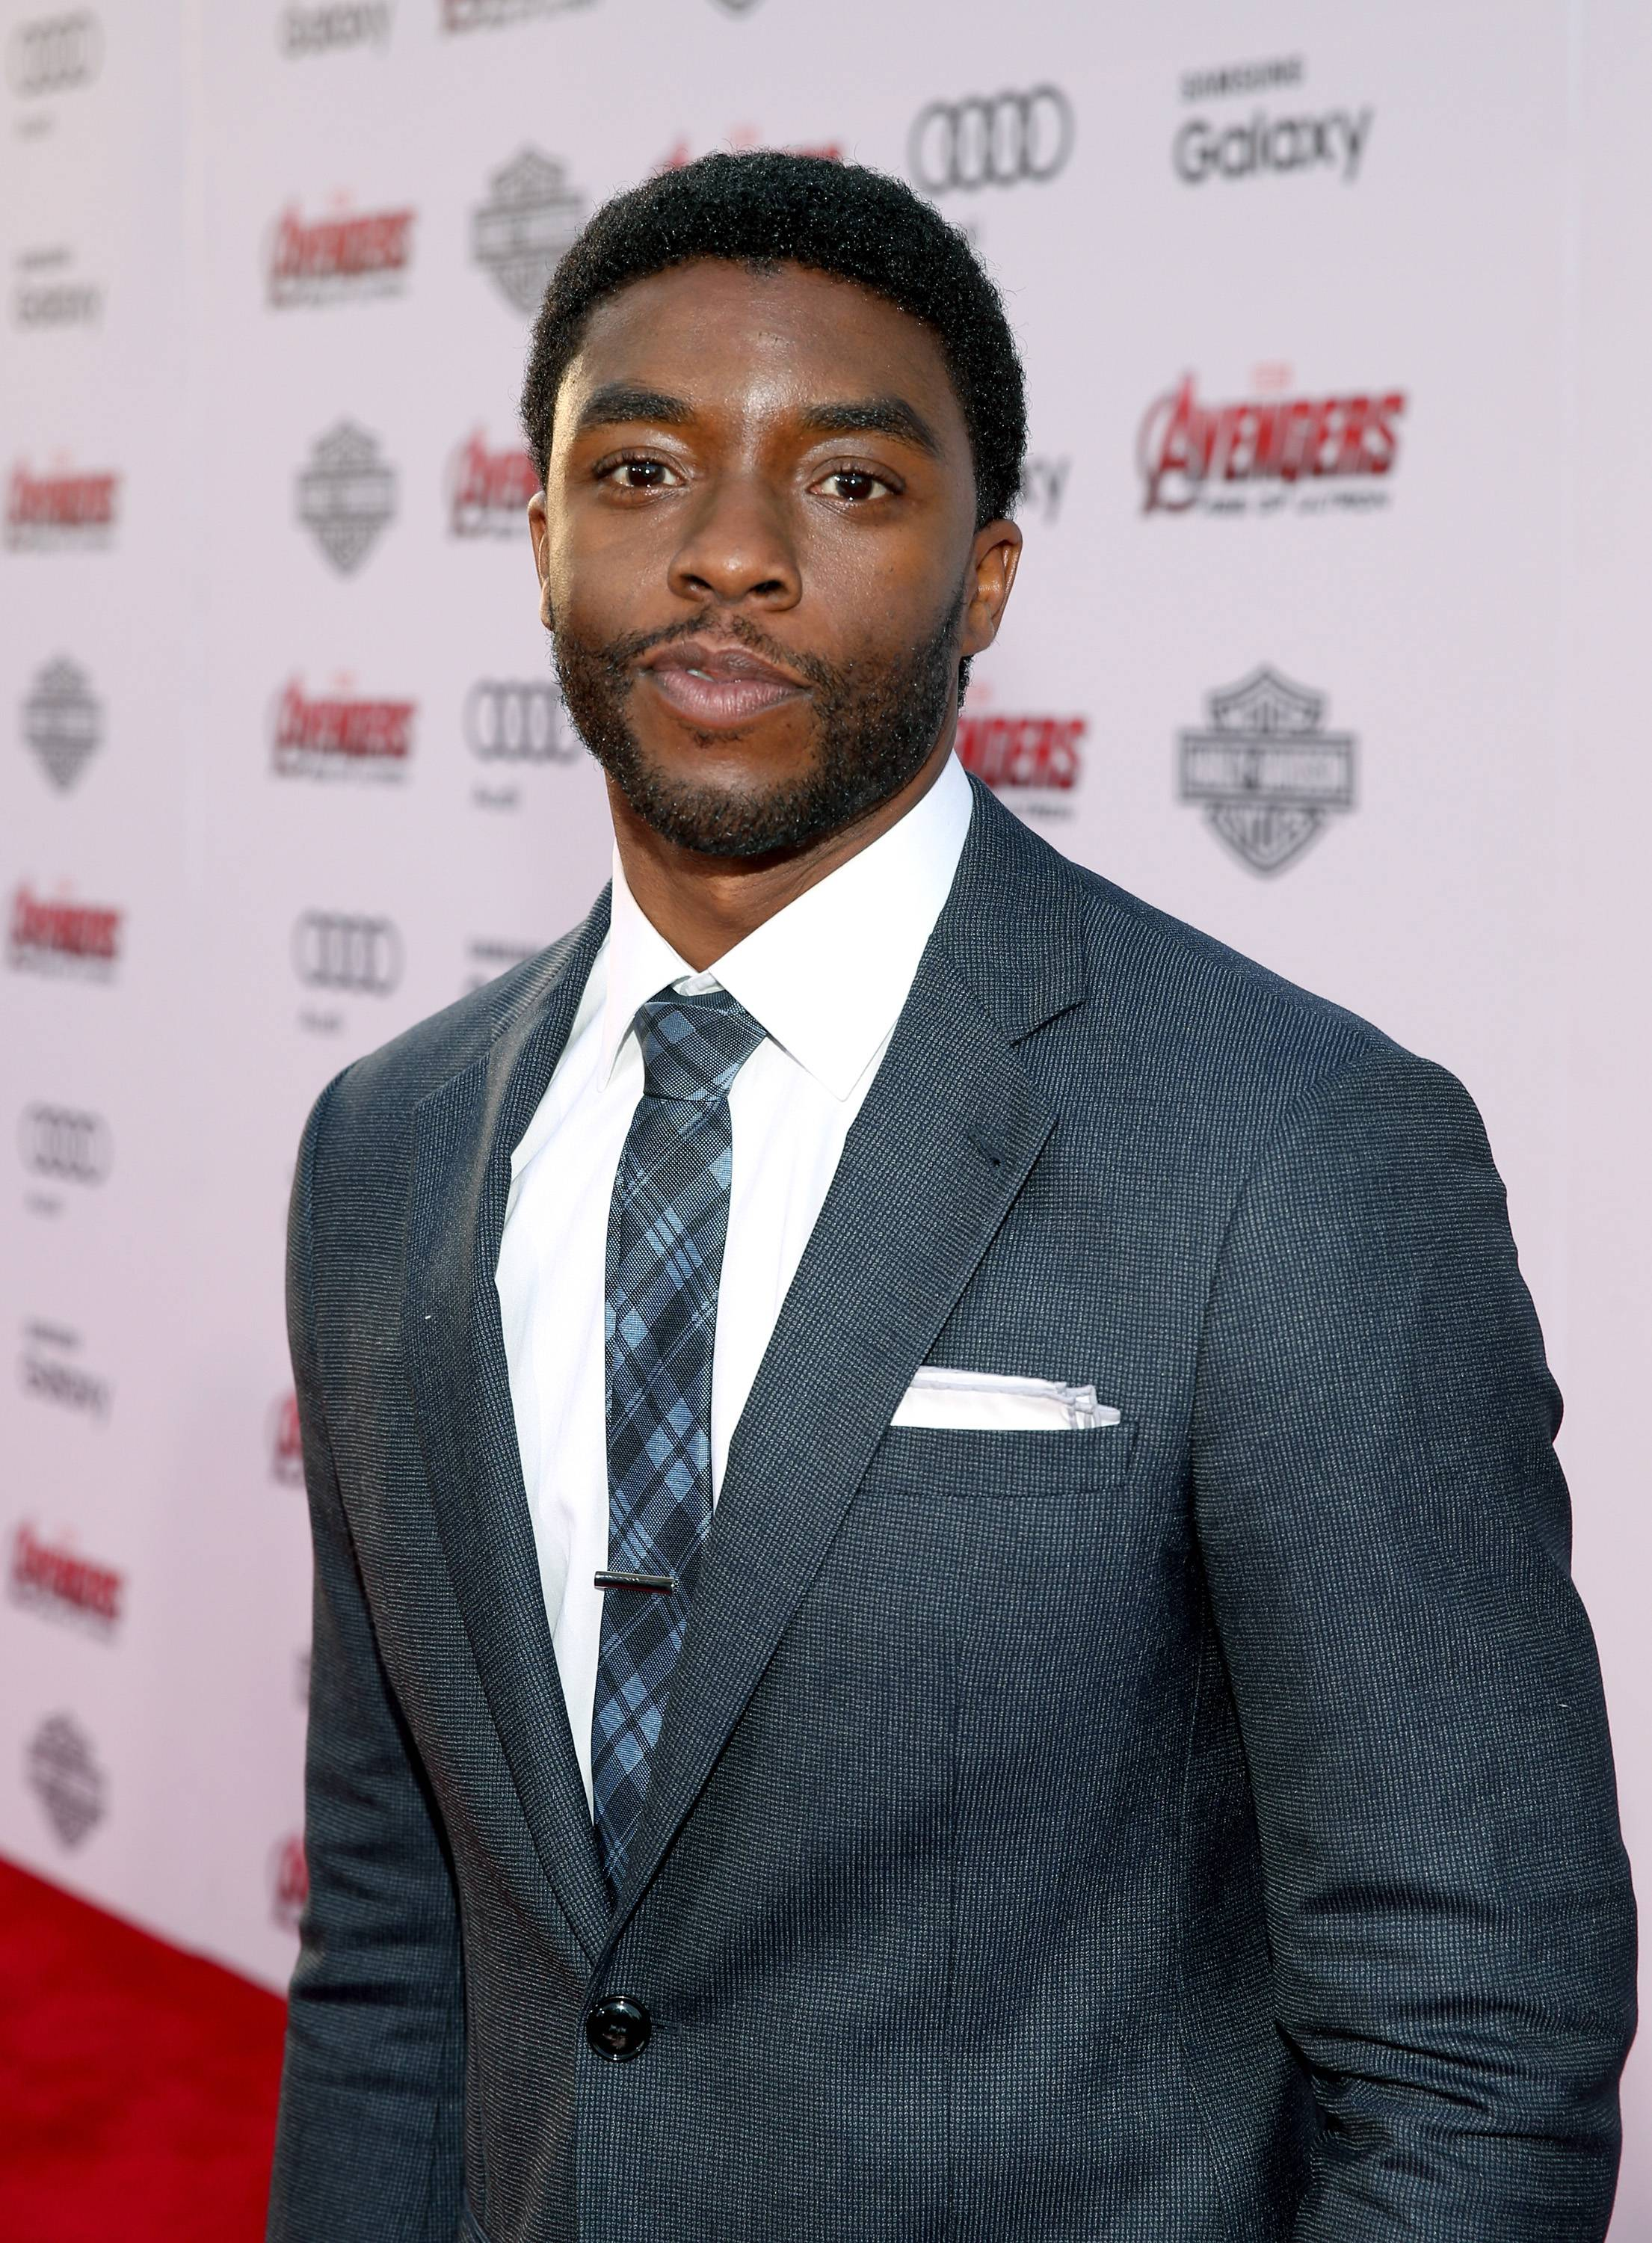 Chadwick Boseman - The actor has a flair for classic, beautiful things. He could be a great piece to add to Sanaa's permanent collection.(Photo: Jesse Grant/Getty Images for Disney)